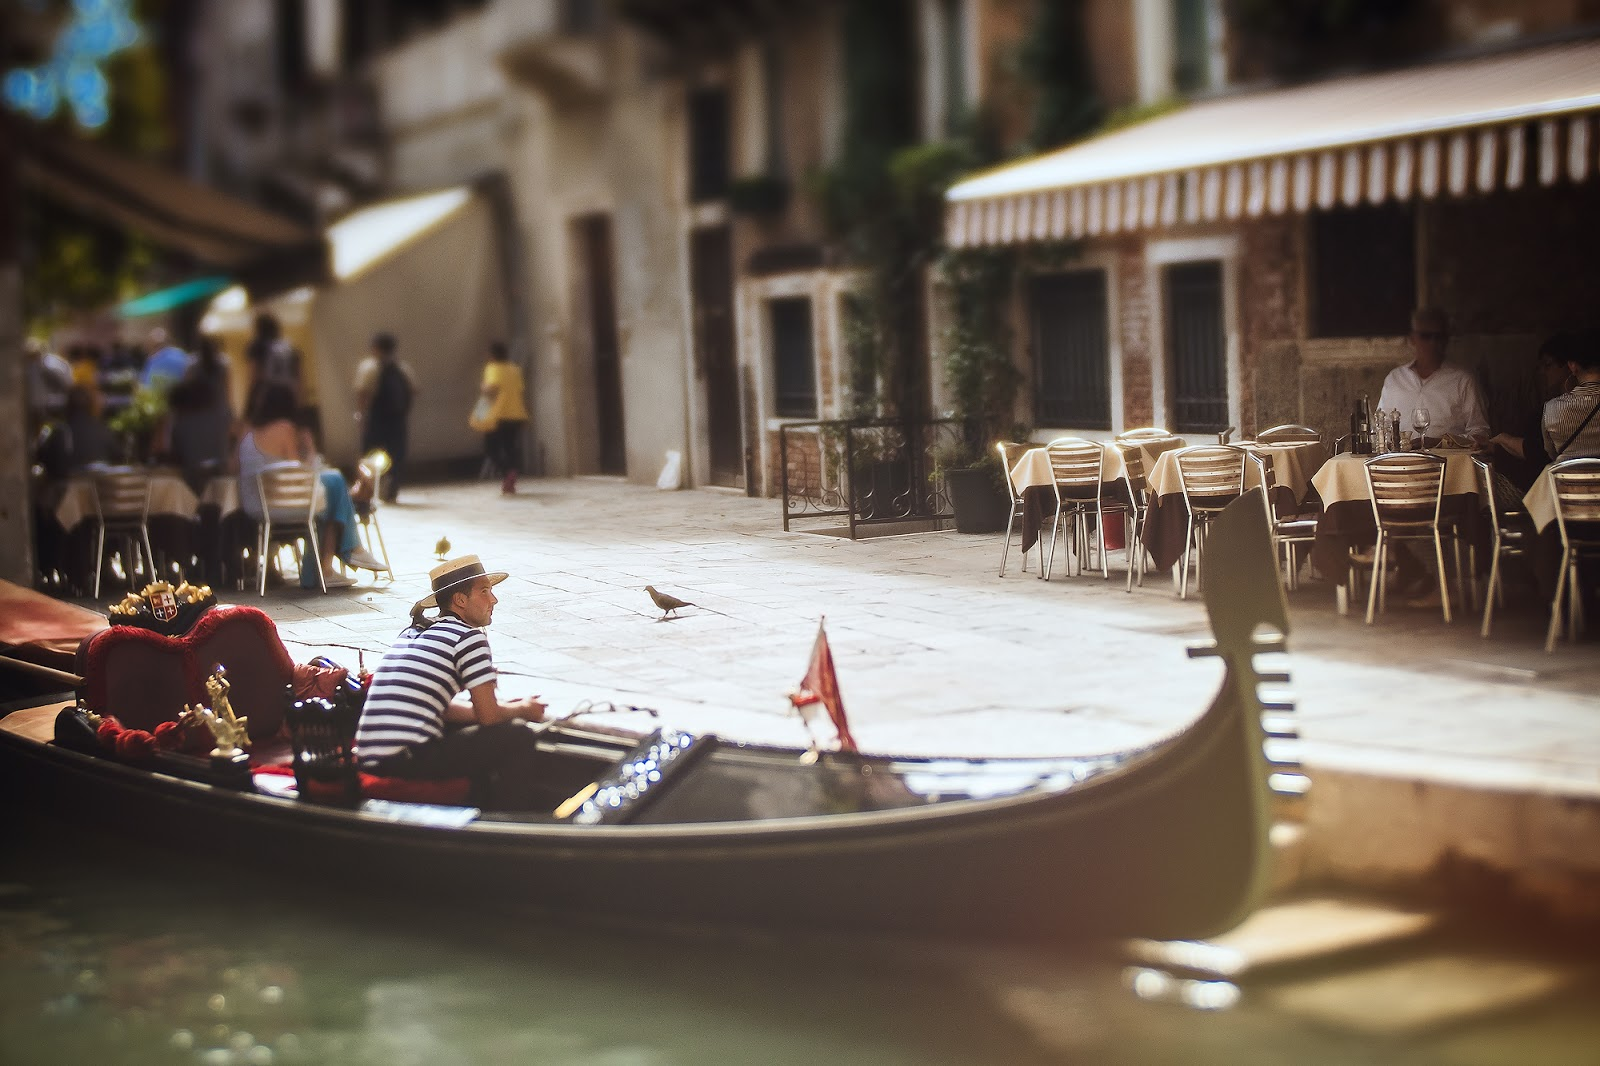 Fujifilm X-pro2 Lensbaby Image of Venice by Willie Kers